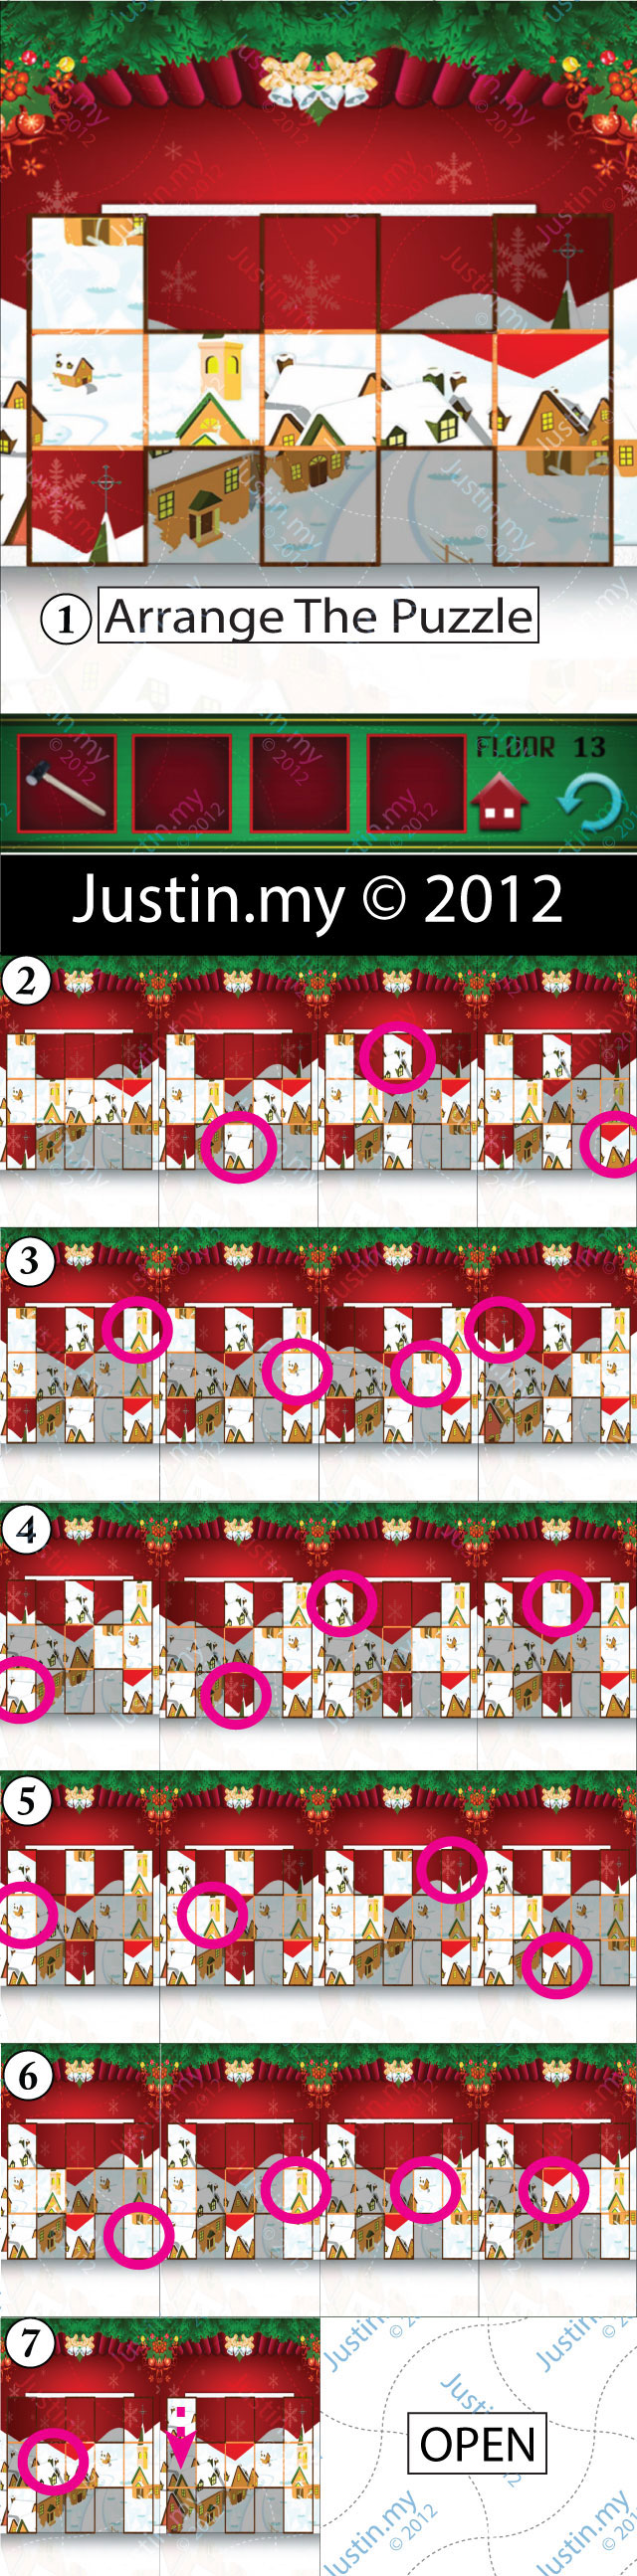 100 Floors Christmas Level 13 v2